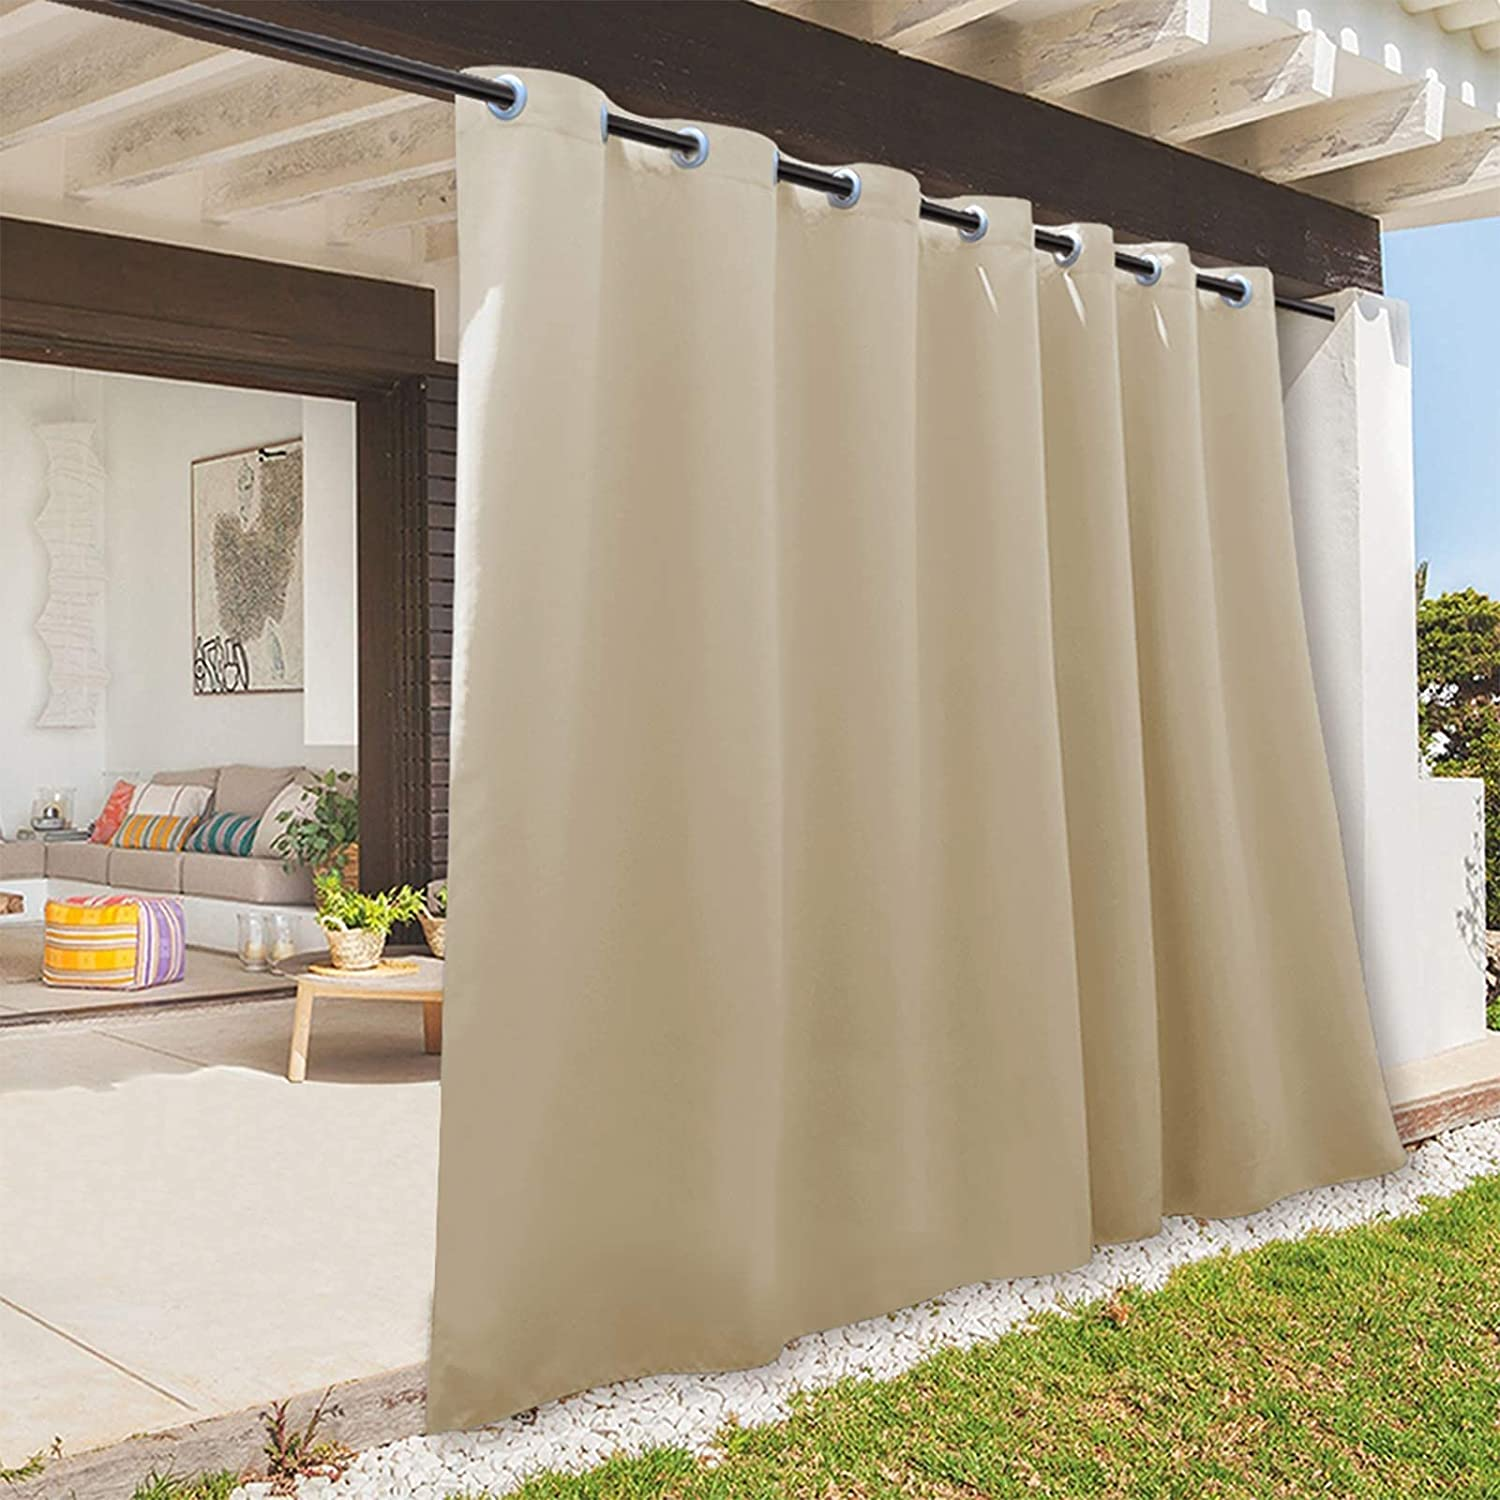 RYB 2021 autumn and Super popular specialty store winter new HOME Patio Curtain Outdoor Drape Large Plus Wide Waterproof